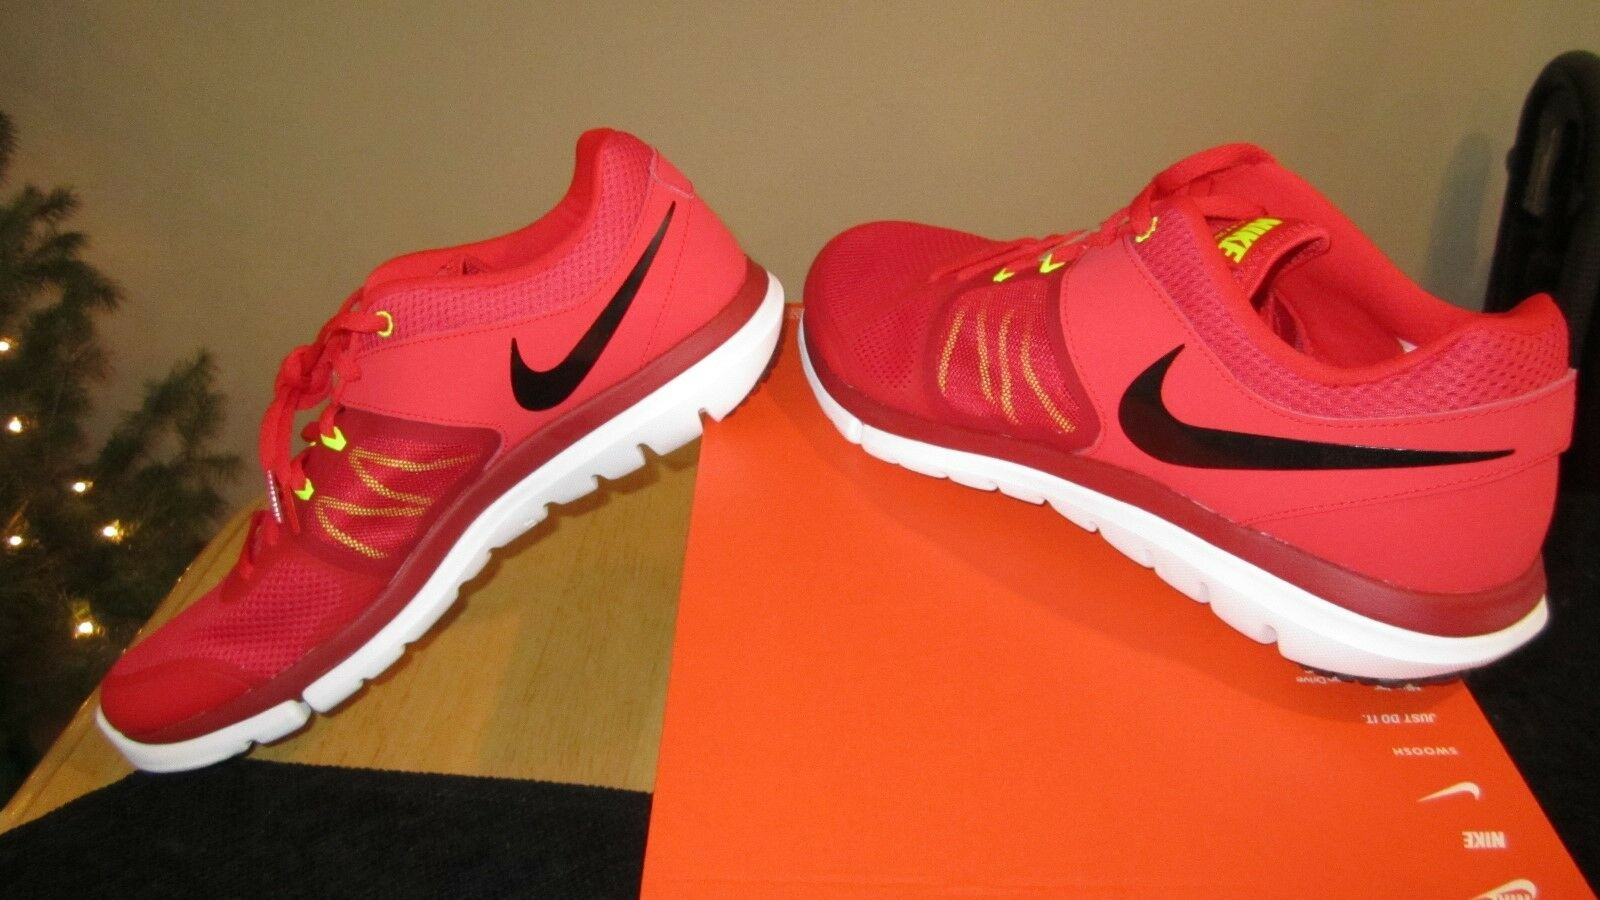 BRAND NEW GENUINE Nike Flex 2014 RN Size 11 Shoes Challenge Red 642791 602